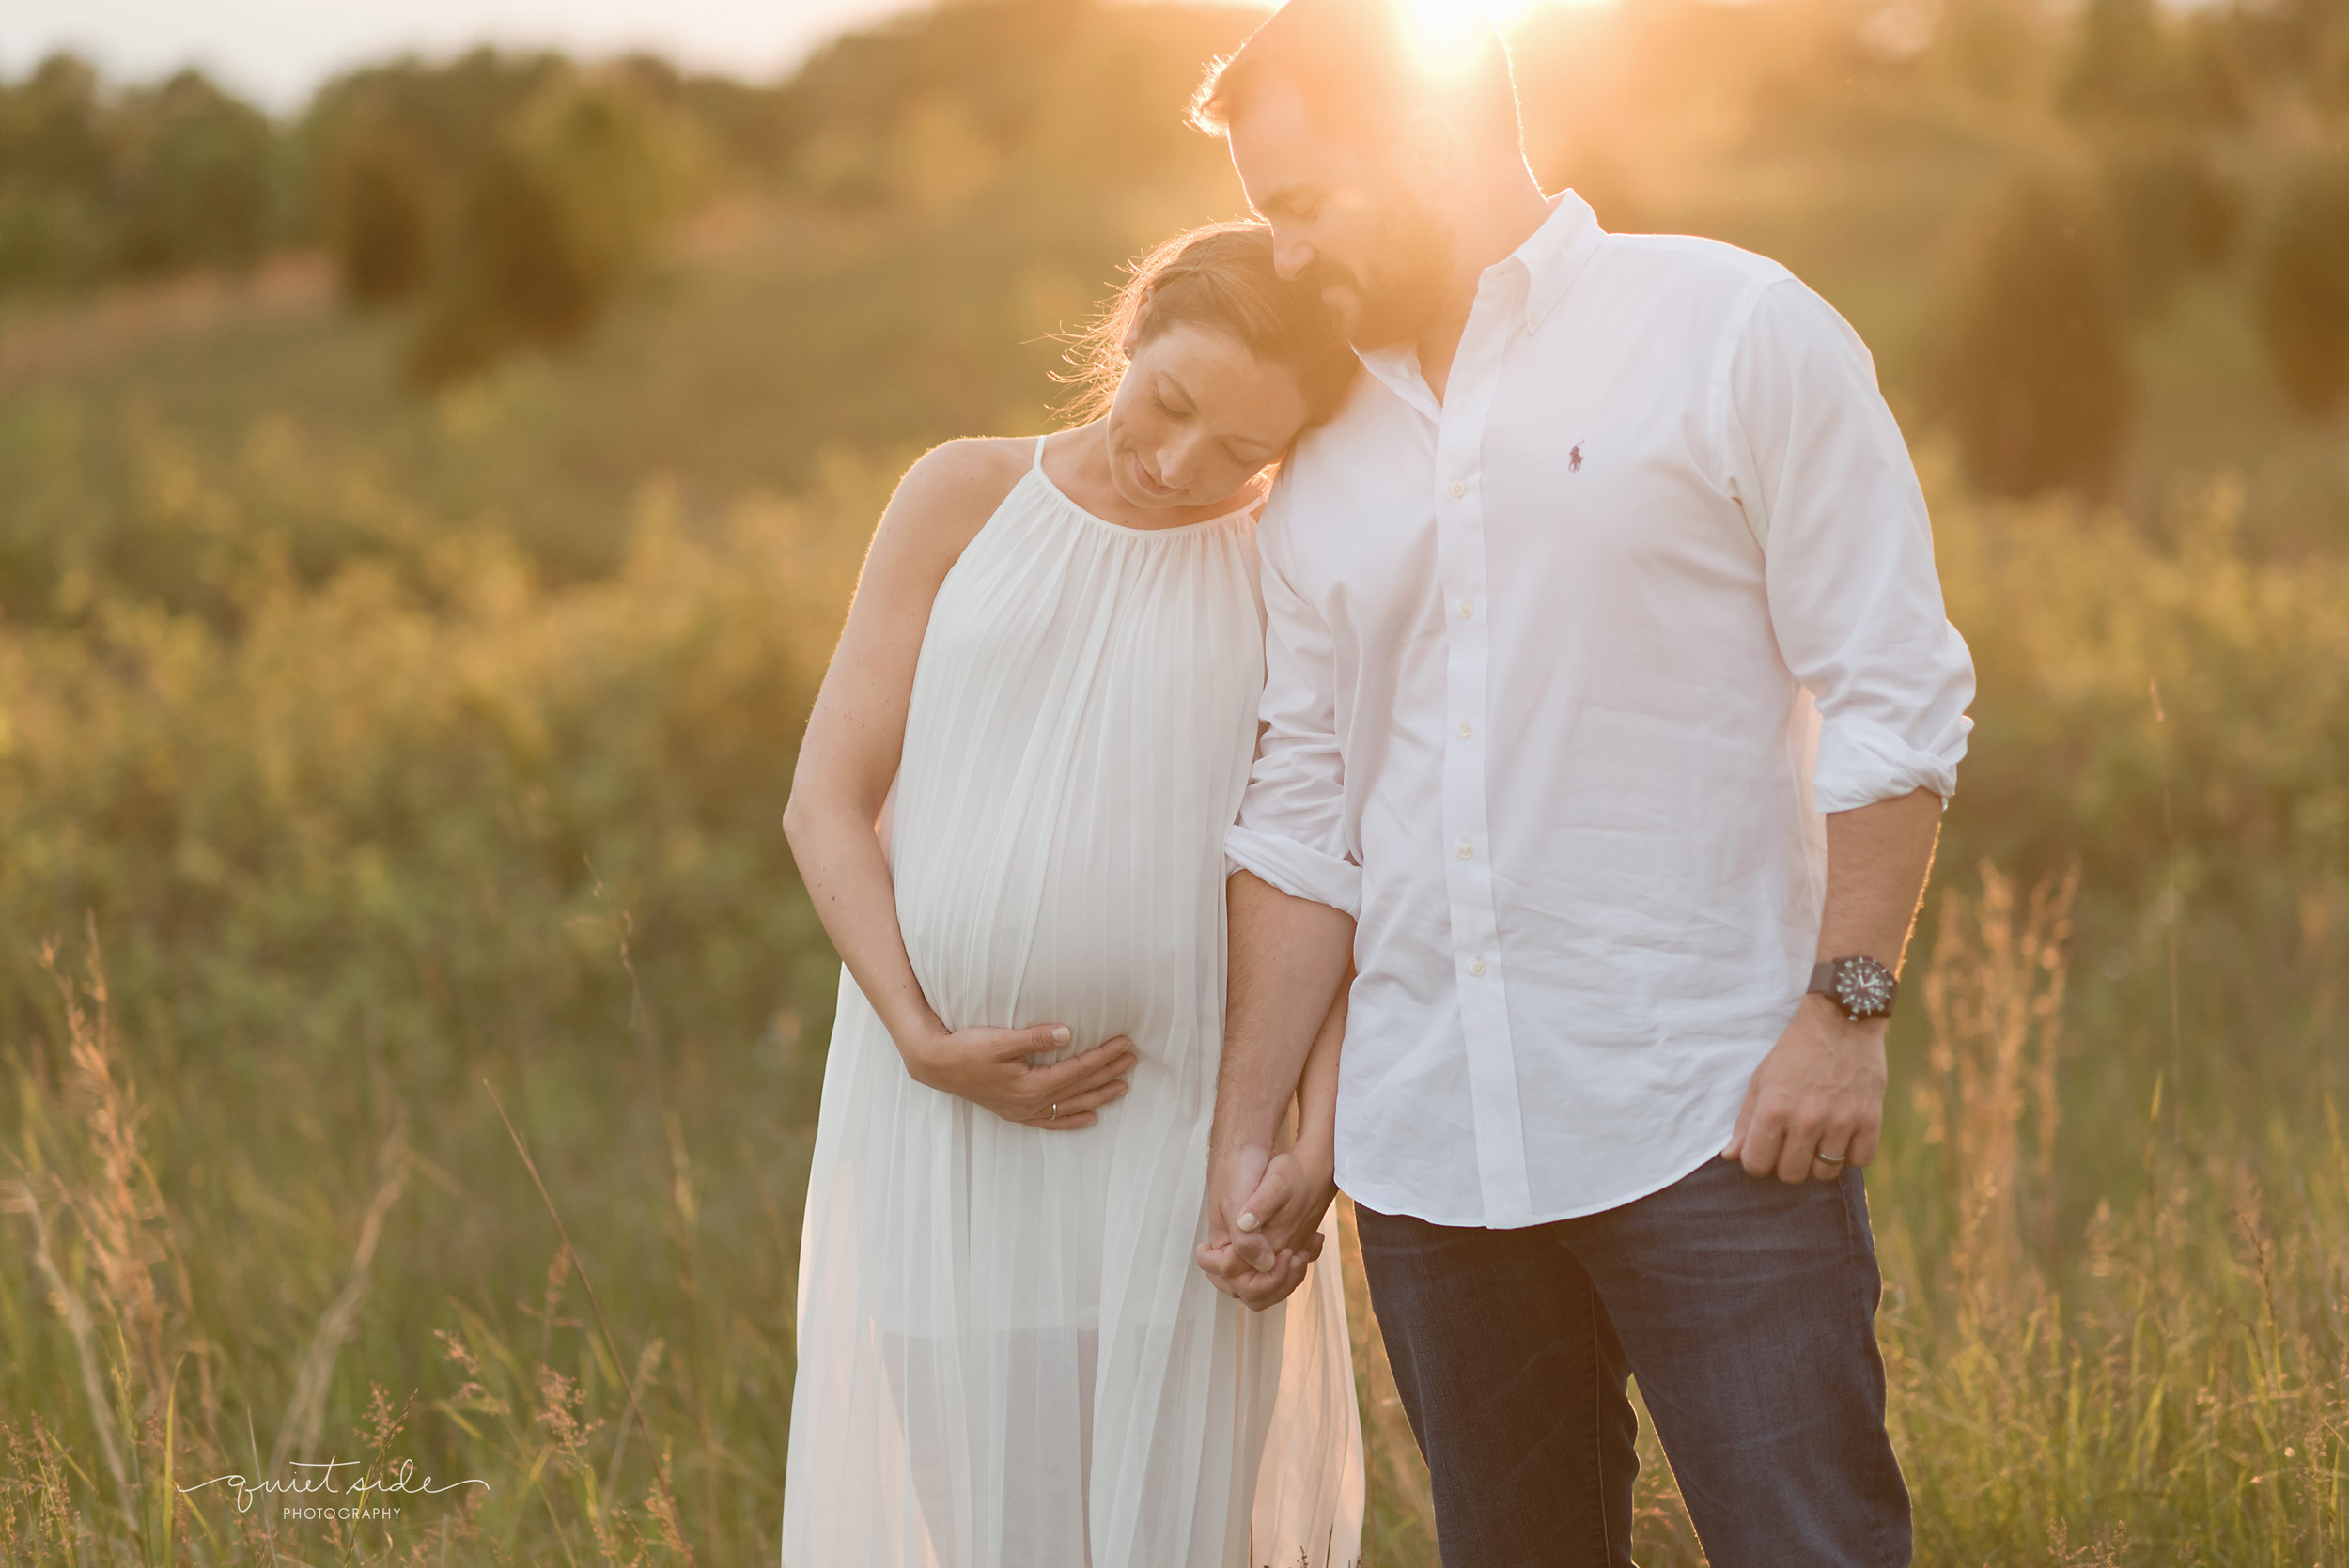 NorthernVirginia-Maternity-Sunset-Outdoor-GoldenHour-QuietSidePhotography-170514_QuietSidePhotography_BlazicMaternity_May2017_5293.jpg